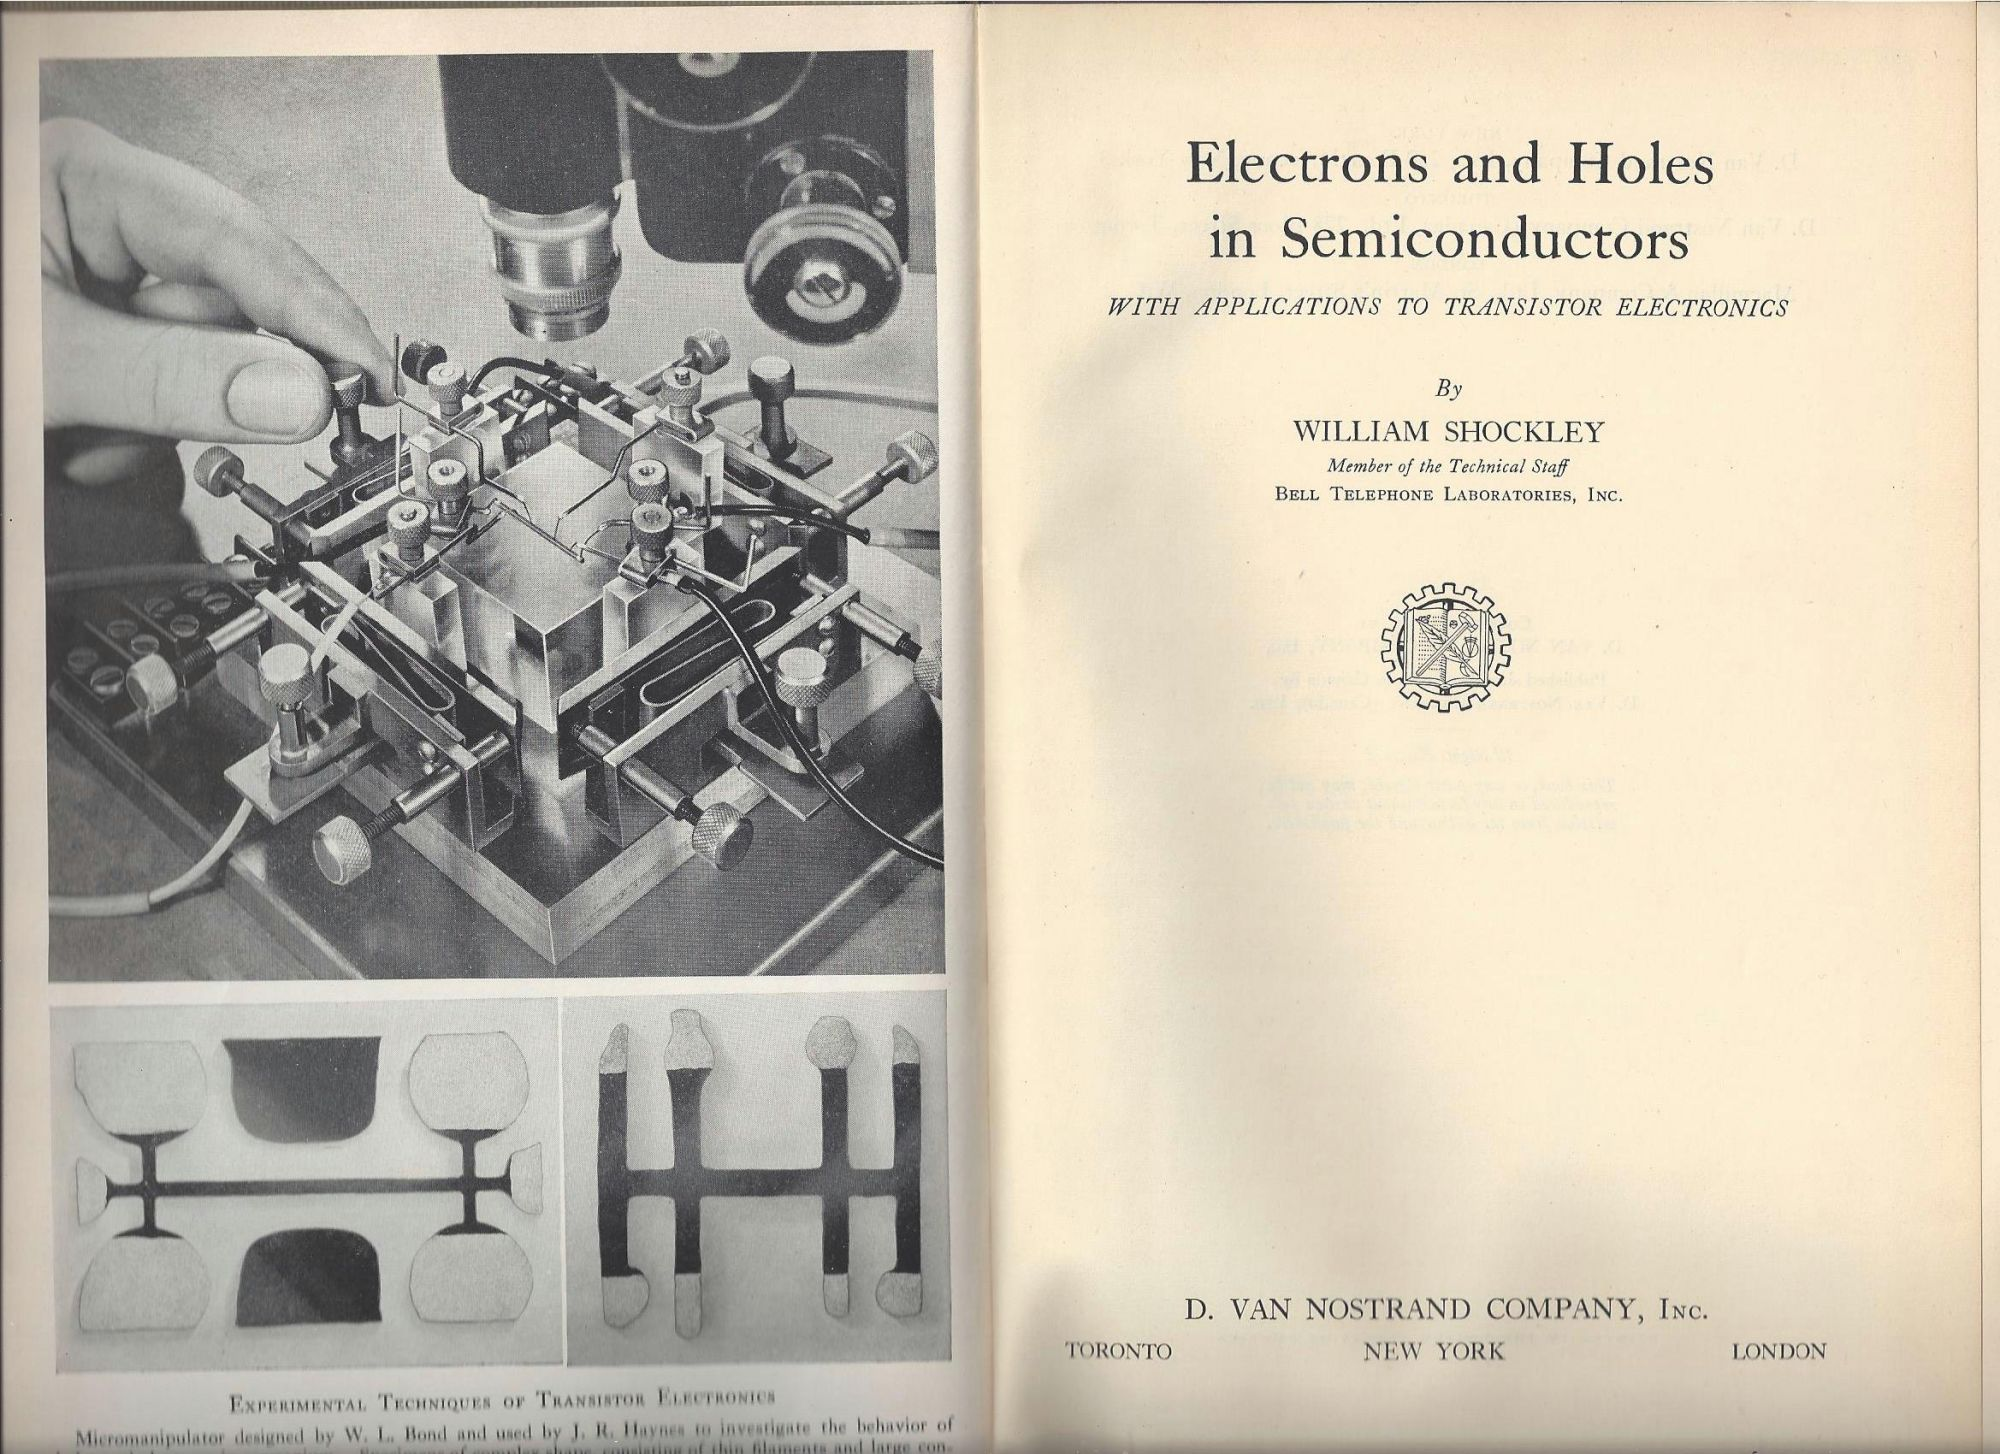 Electrons and Holes in Semiconductors with Applications to